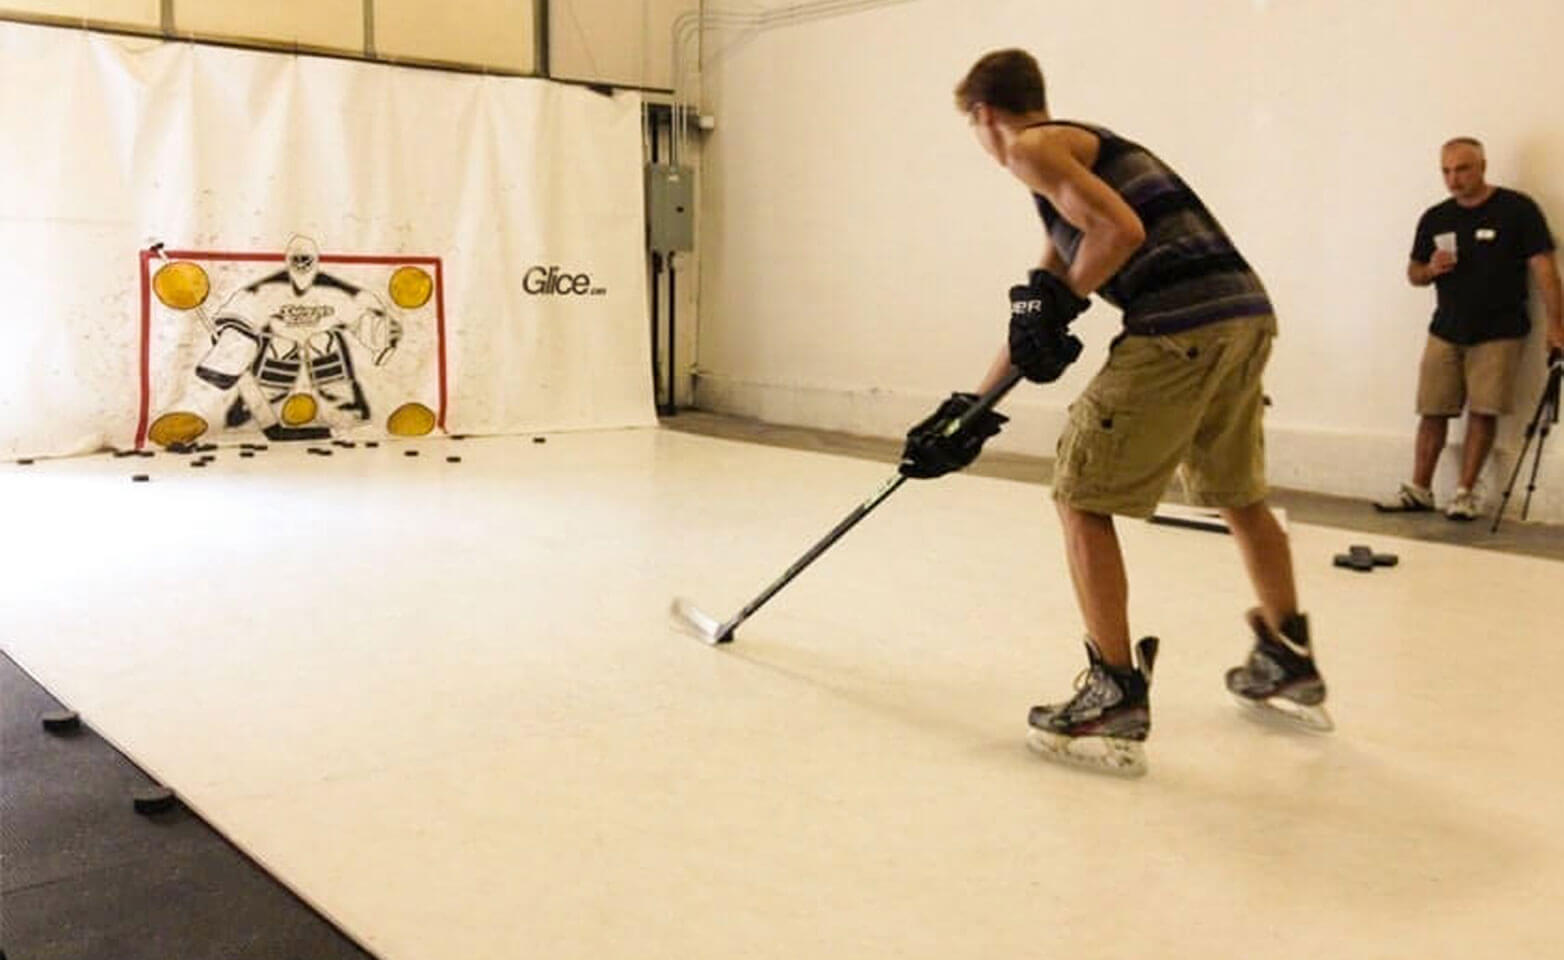 Training hockey on a plastic ice pad at home